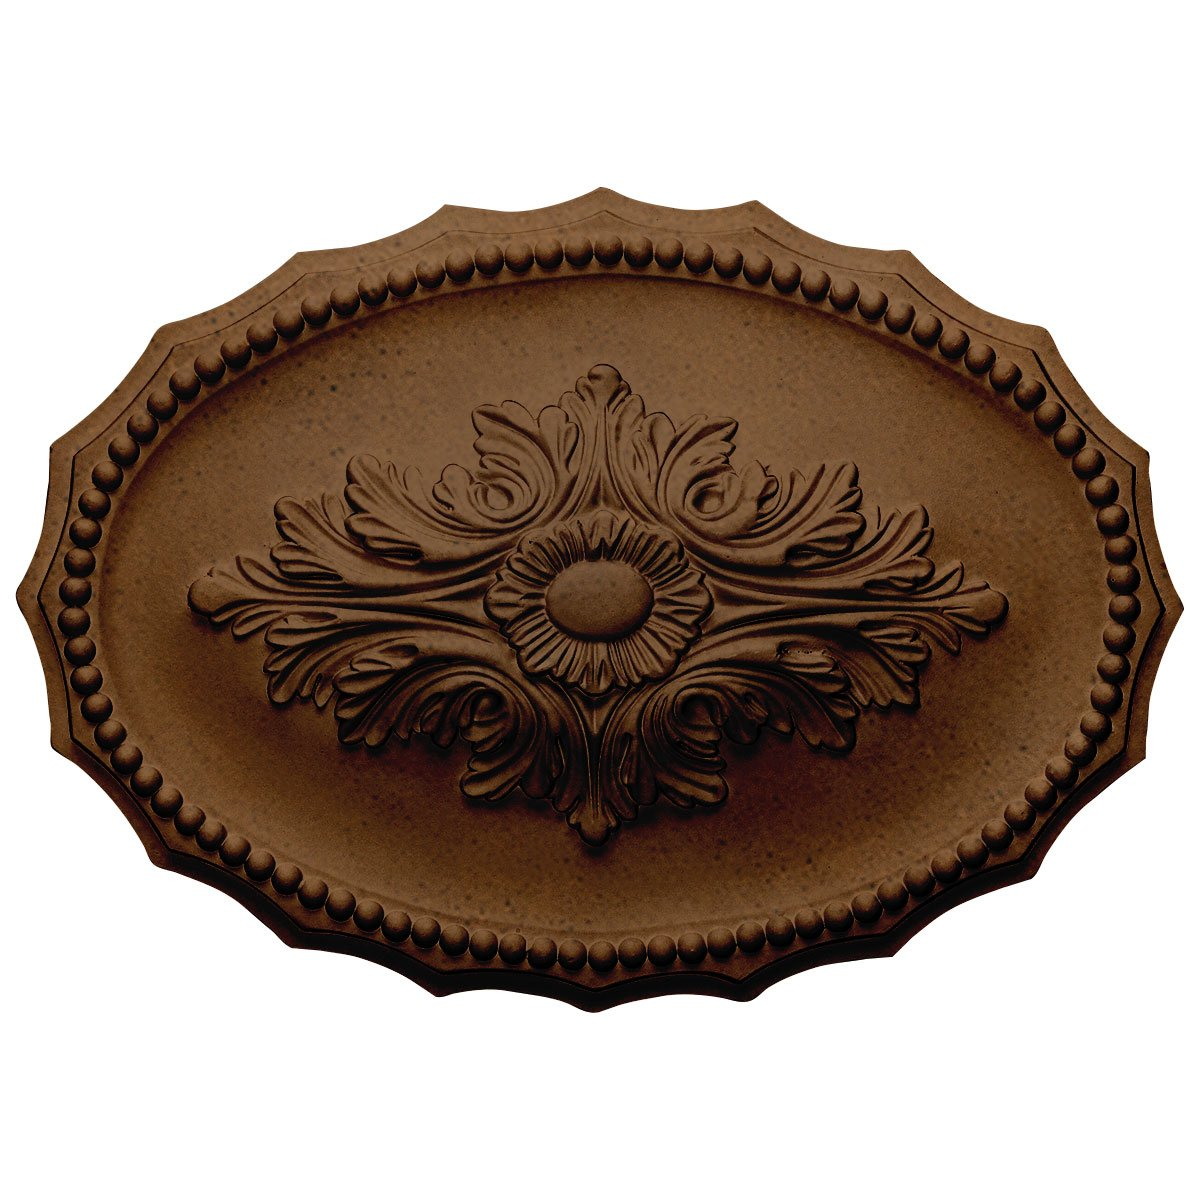 Ekena Millwork CM16OXRZS Oxford Ceiling Medallion, Rubbed Bronze by Ekena Millwork